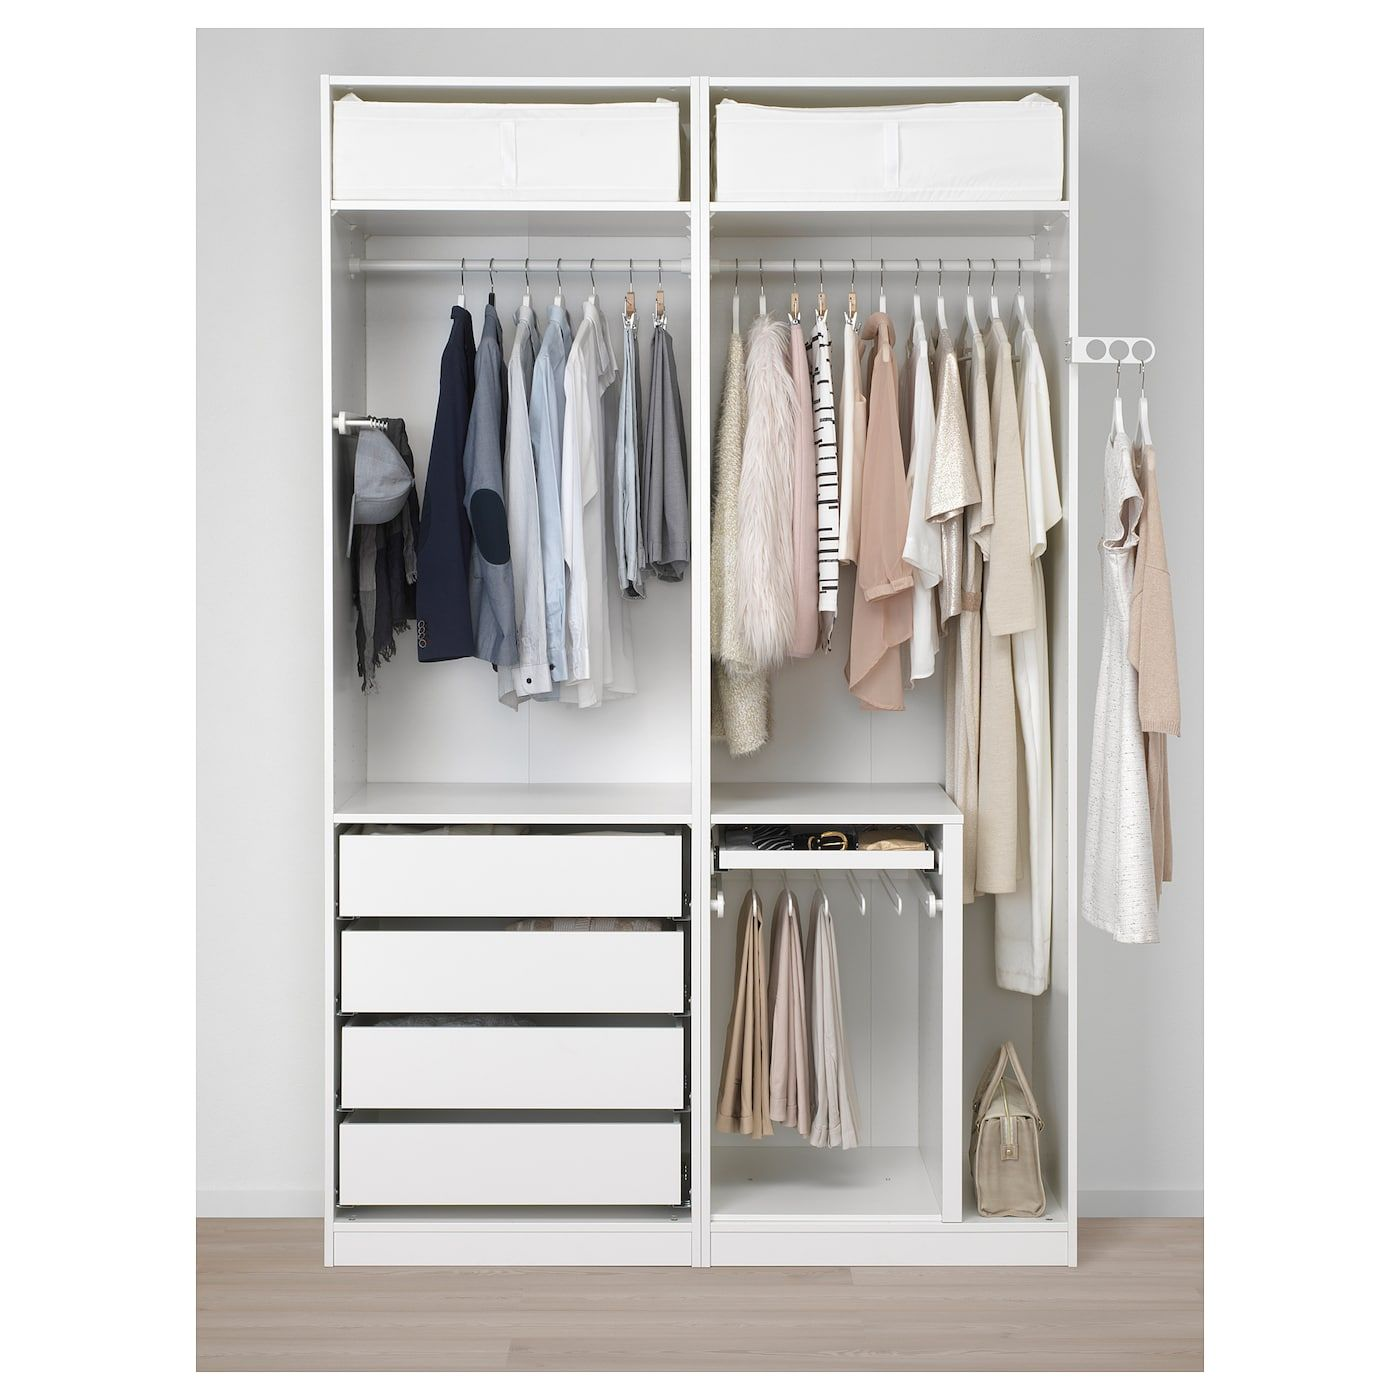 Ikea Us Furniture And Home Furnishings Ikea Pax Wardrobe Pax Corner Wardrobe Ikea Wardrobe